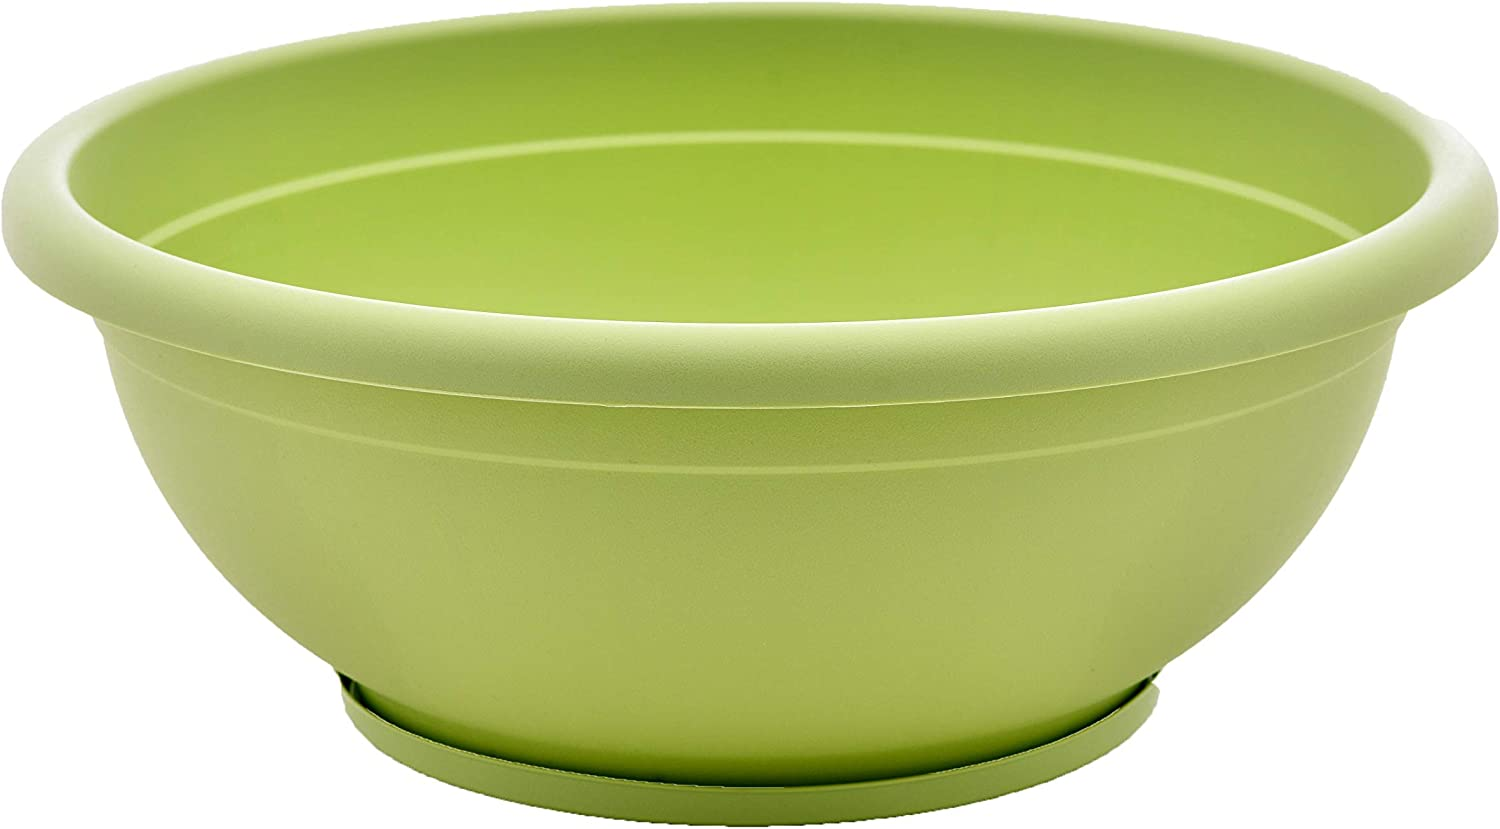 TABOR TOOLS VEN308 Plastic Planter Bowl, Garden Bowl with Attached Drainage Tray, for Indoor and Outdoor Use, Round Ø 12 Inch (Color: Pastel Green)